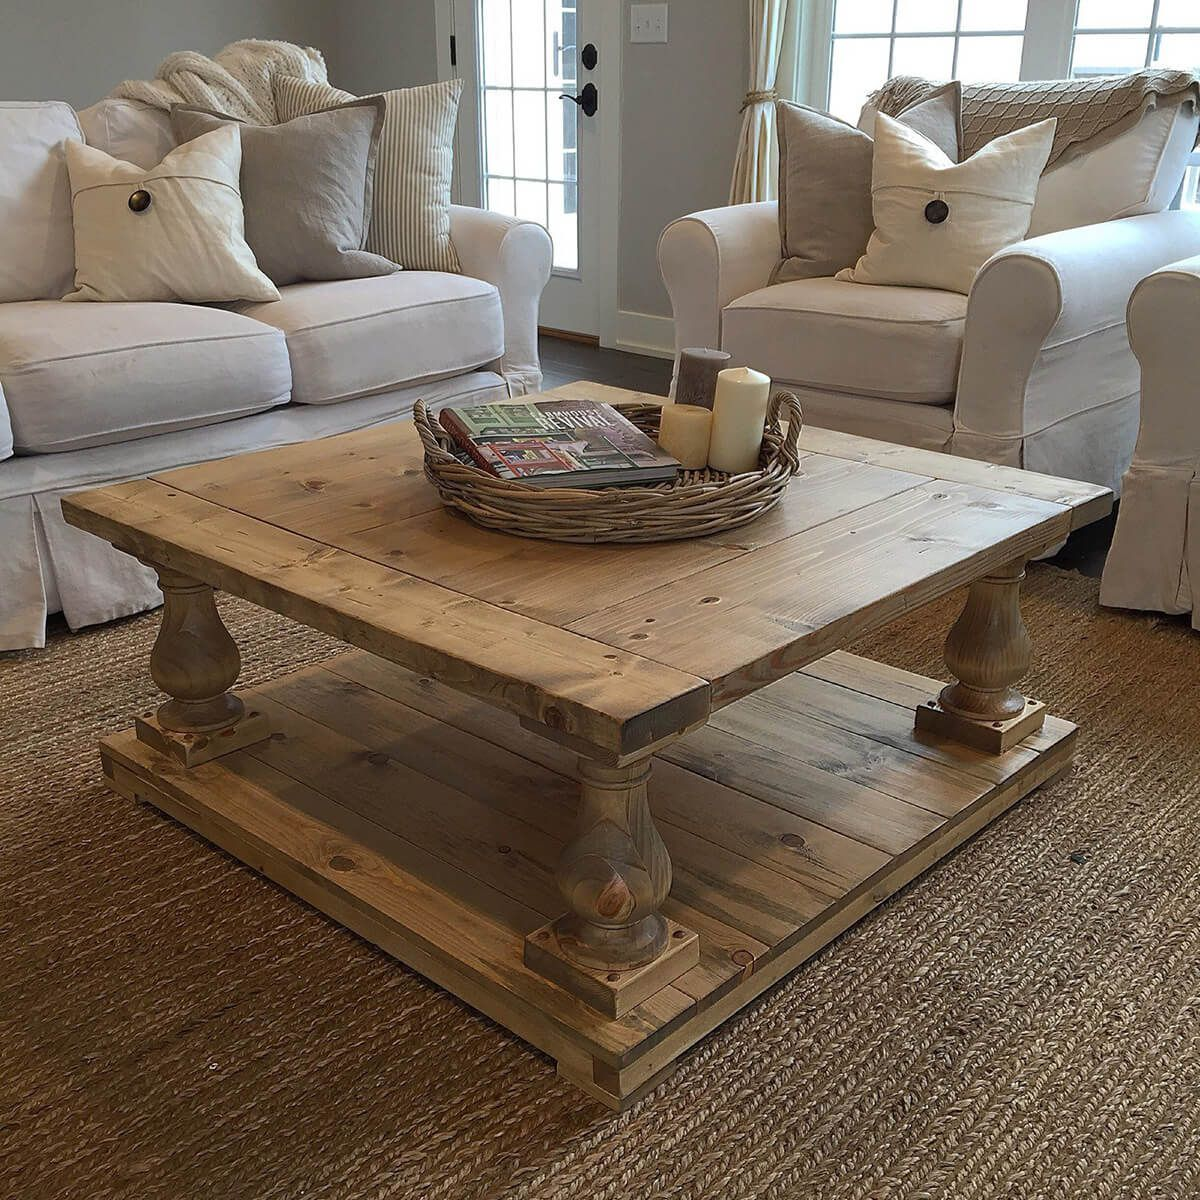 36 Beautiful Coffee Tables For All Living Room Styles Coffee Table Farmhouse Diy Farmhouse Coffee Table Rustic Coffee Tables